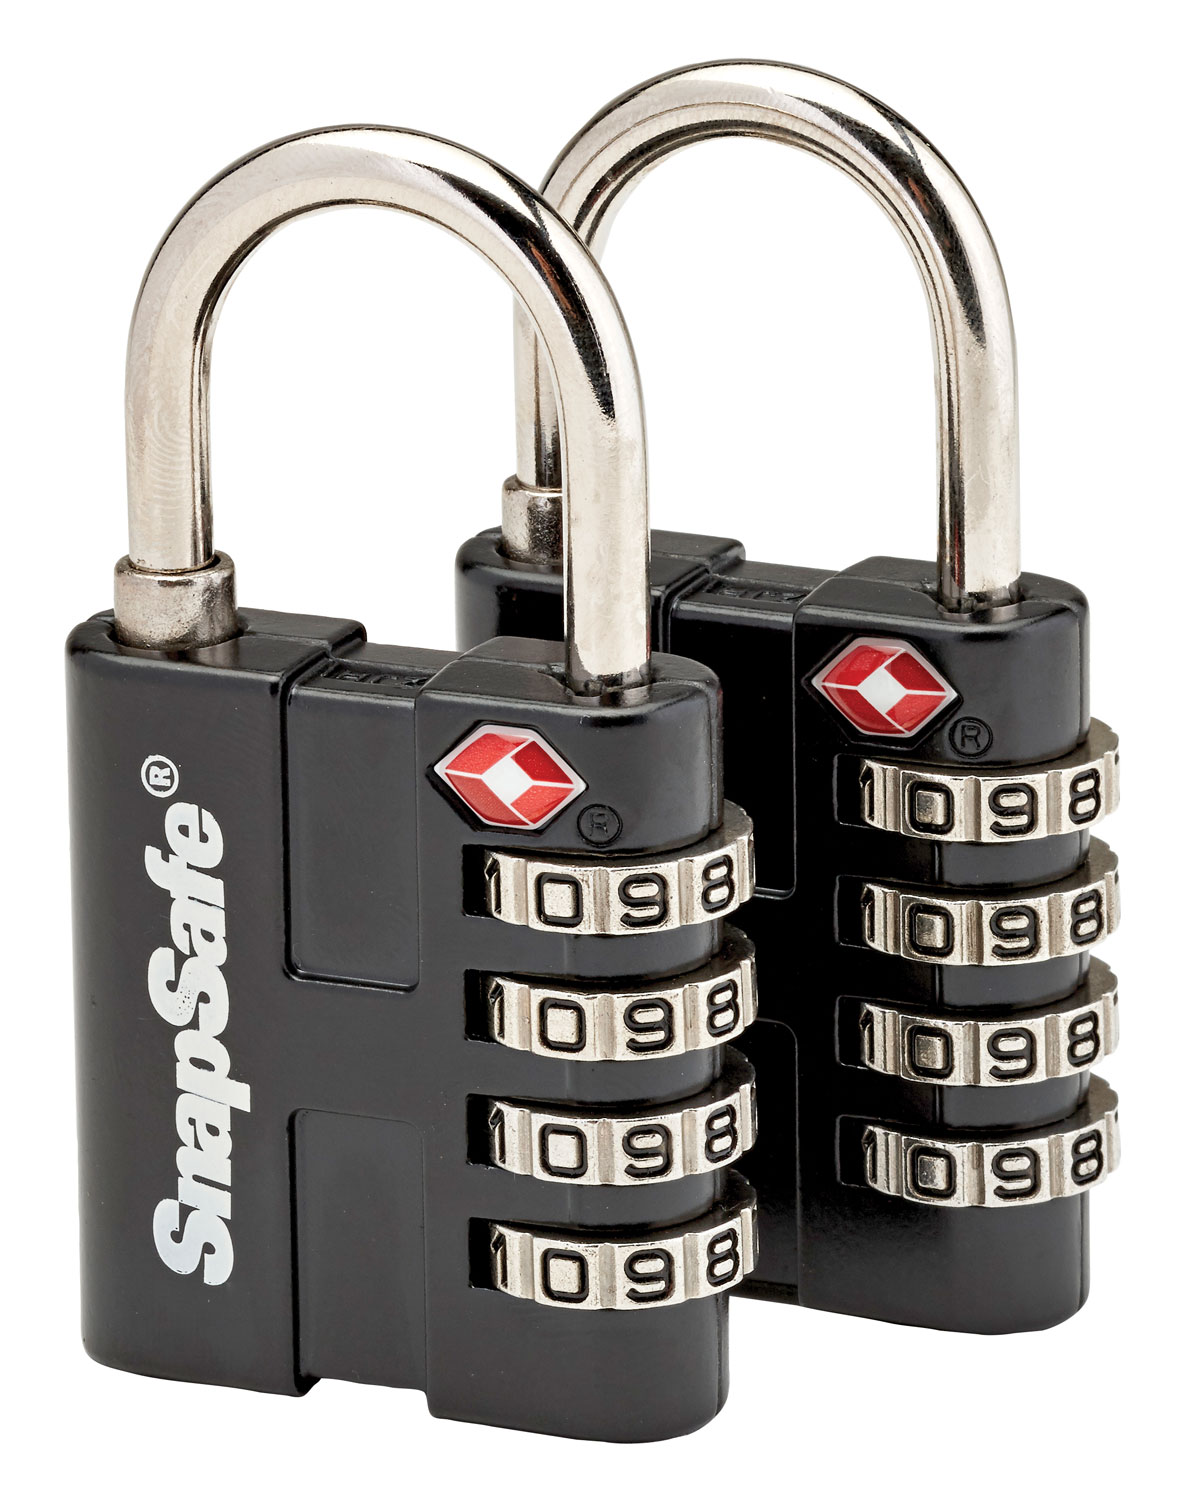 Snap Safe 76020 TSA Padlocks Combination Lock Black